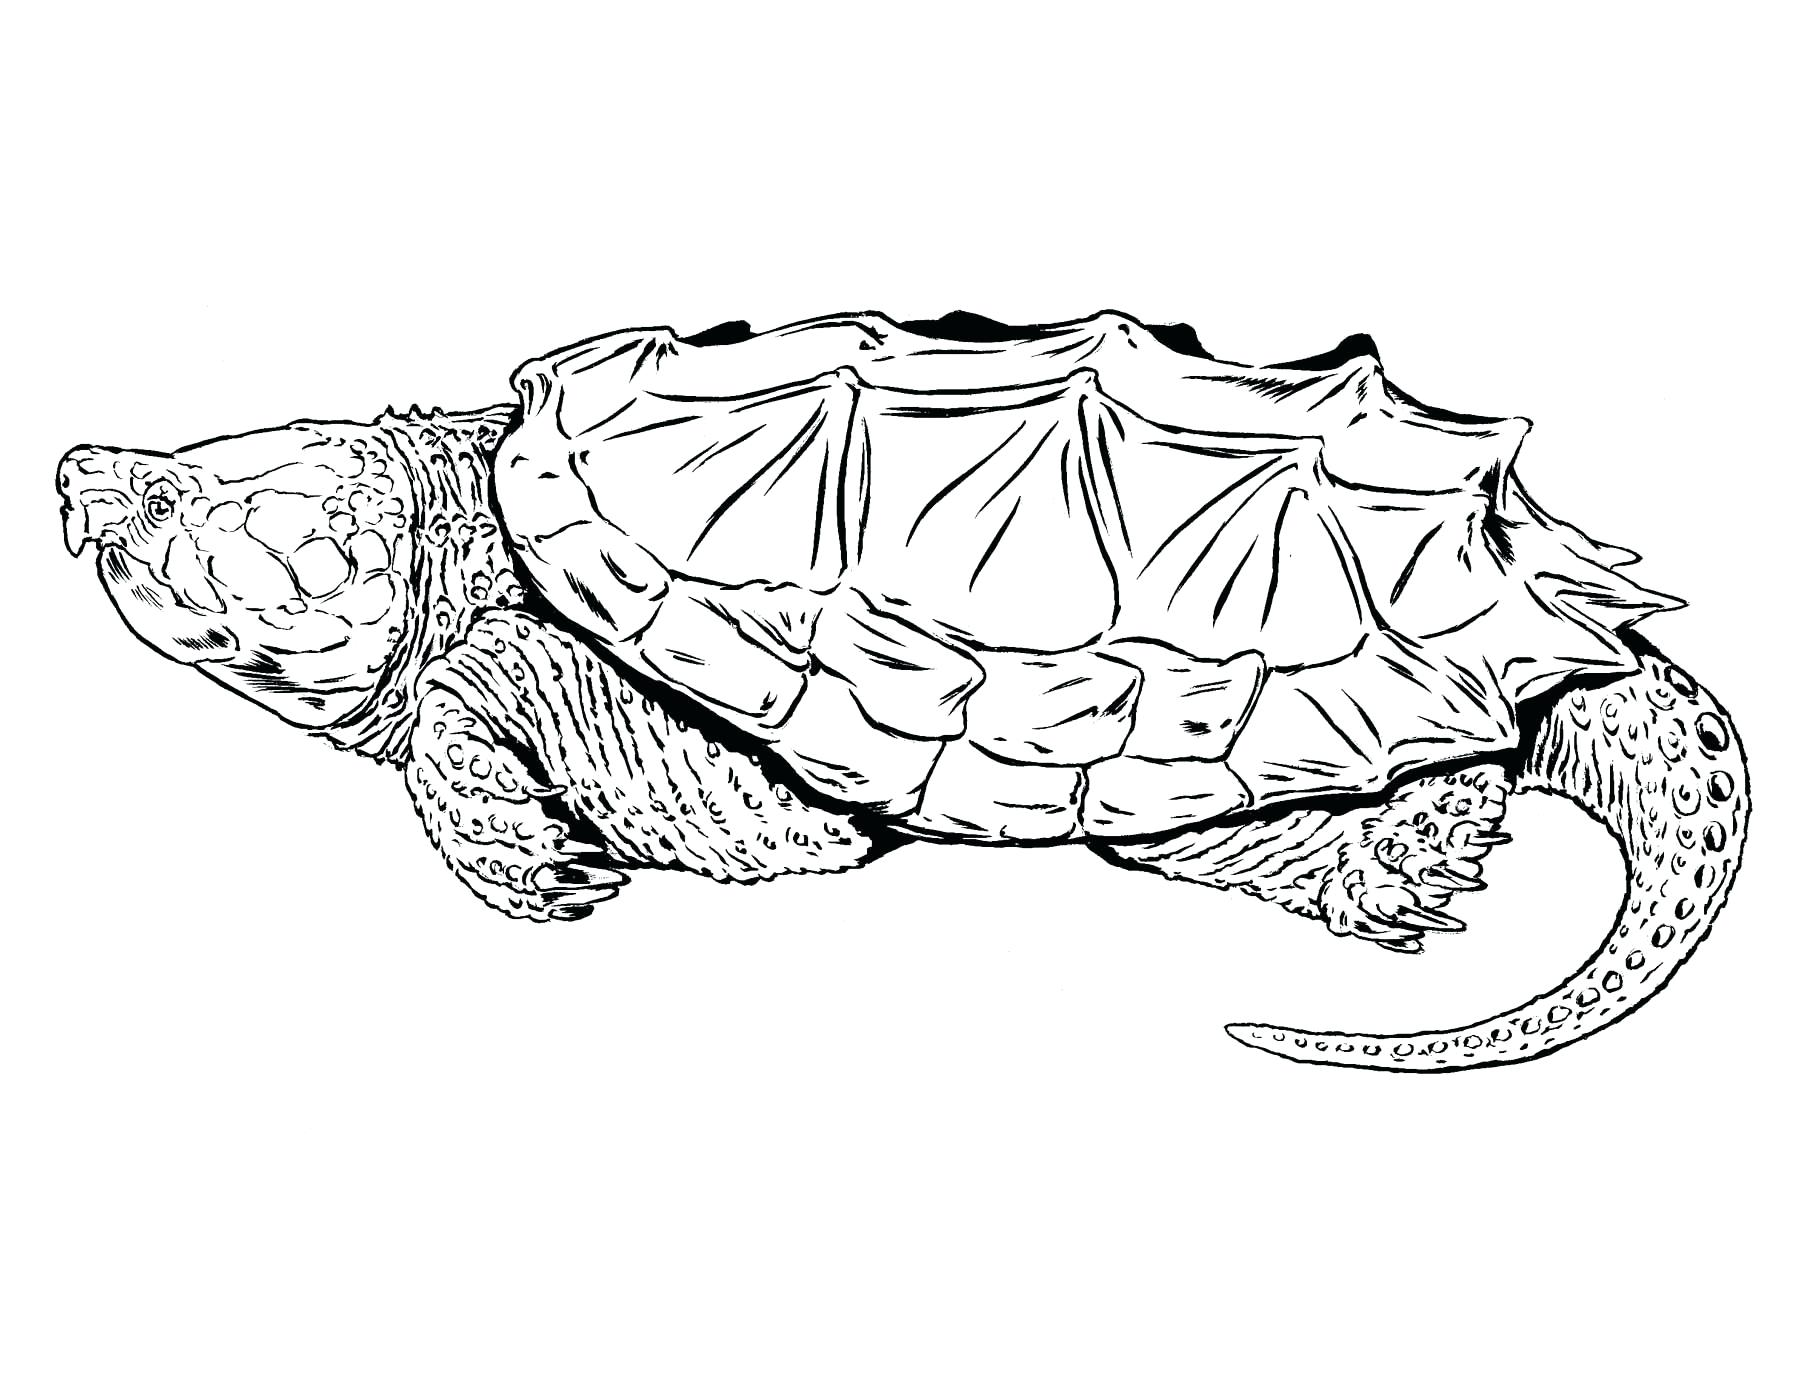 Alligator Snapping Turtle Drawing At Getdrawings